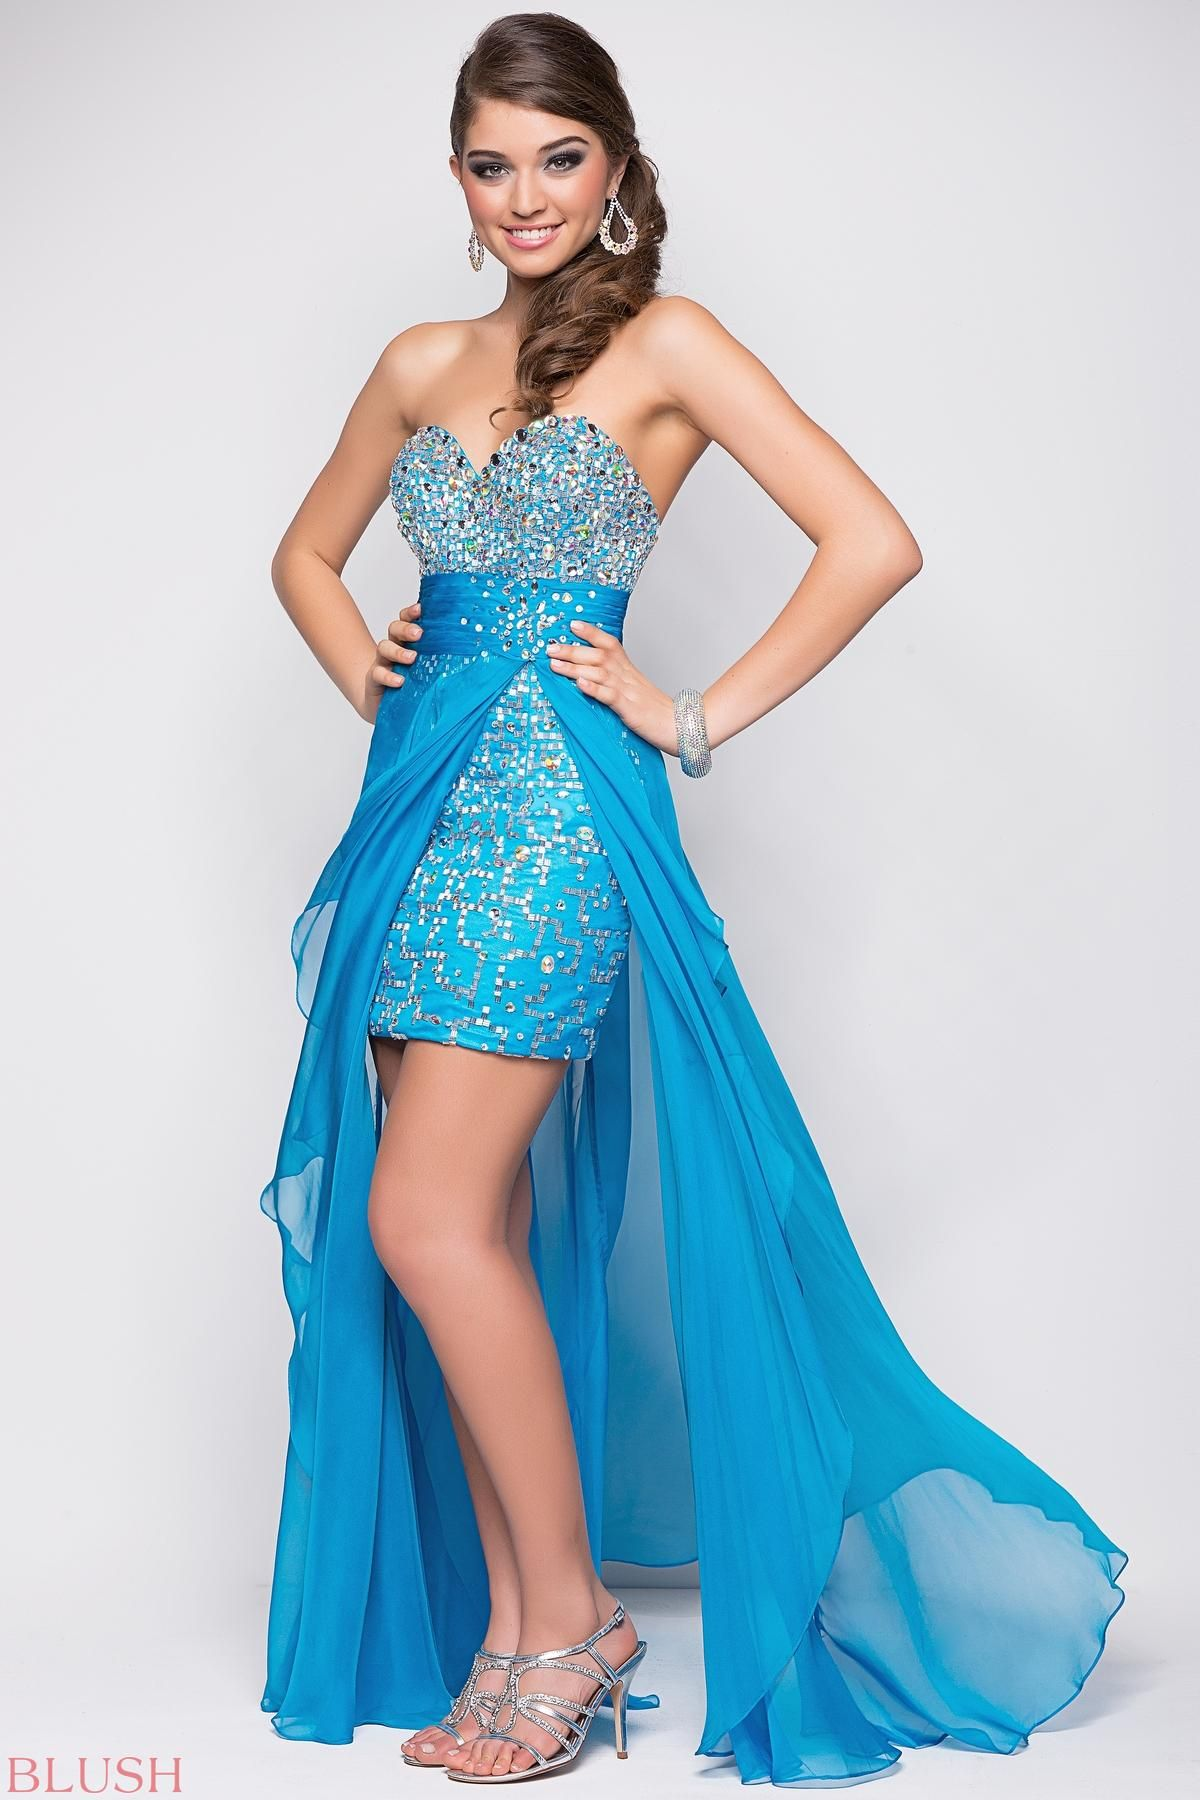 Short prom dresses rock this hot sexy mini rocks with jewels and